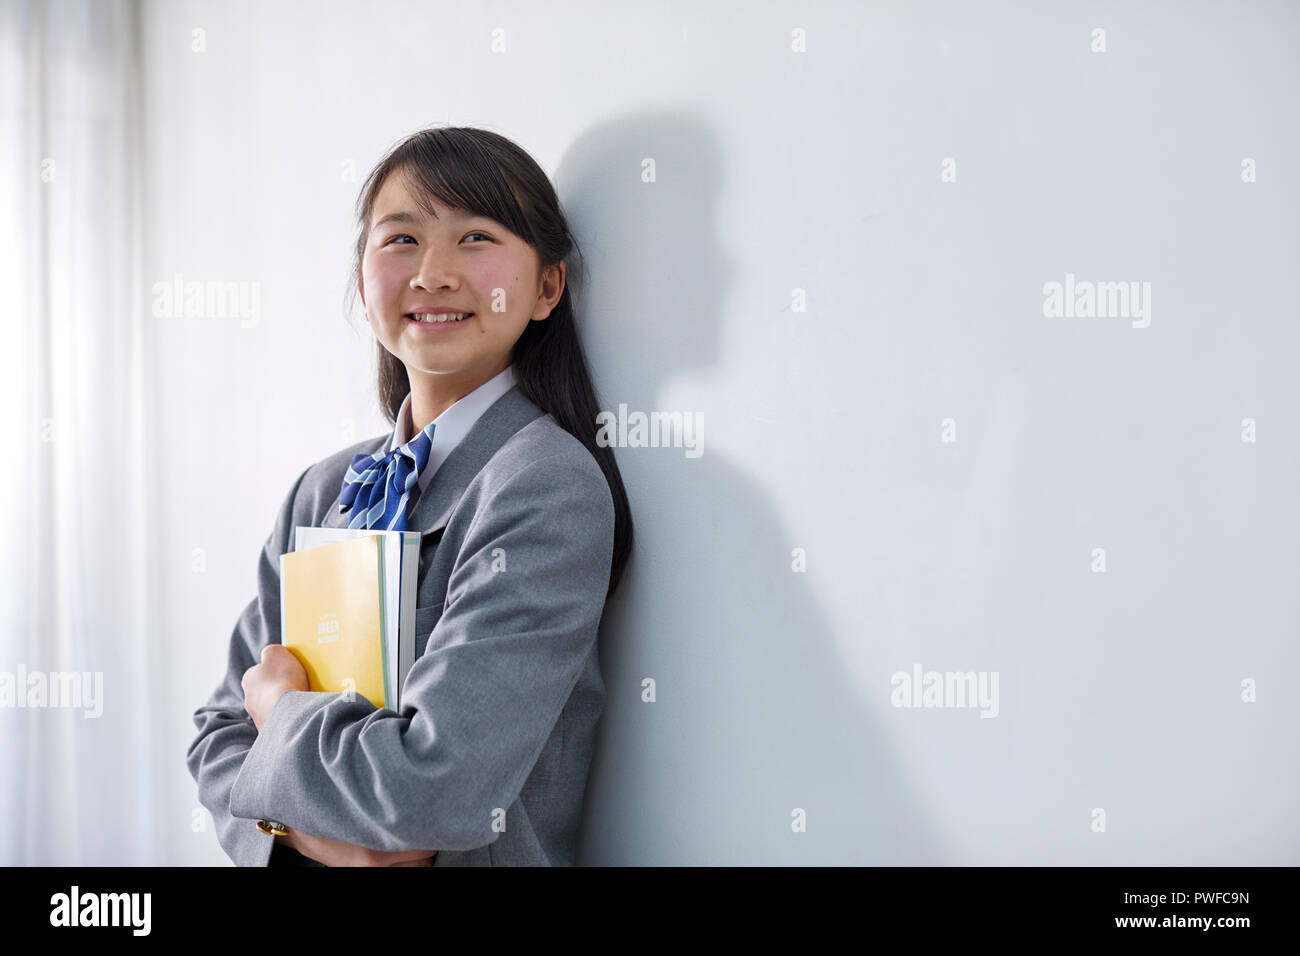 Japanese junior high student - Stock Image